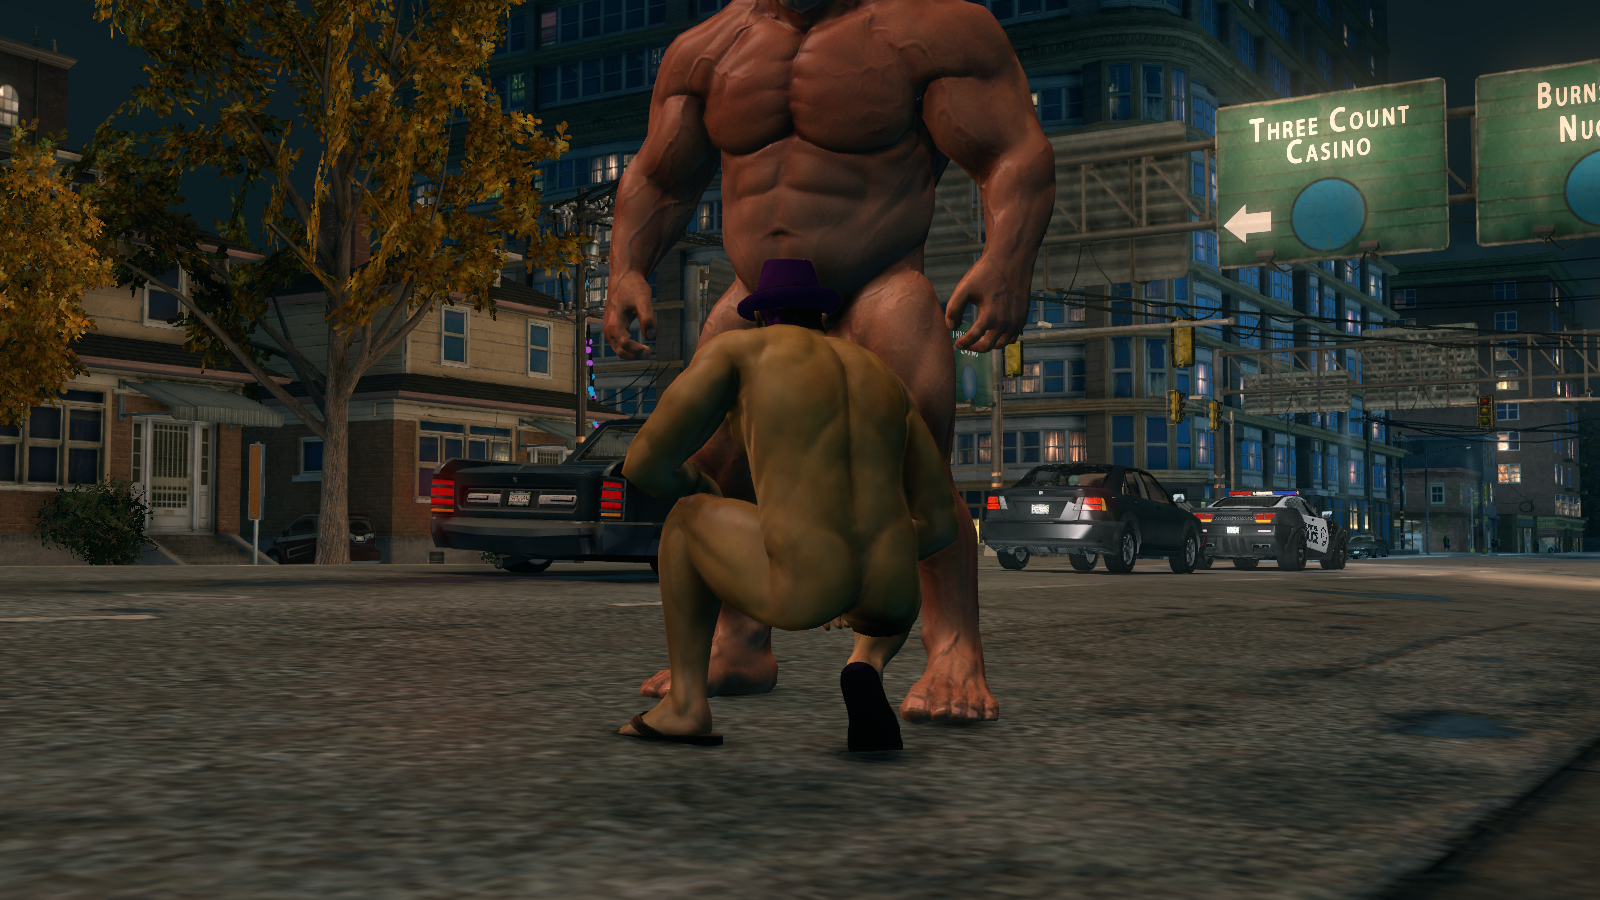 Saints row 4 male nudity patch pornos pictures